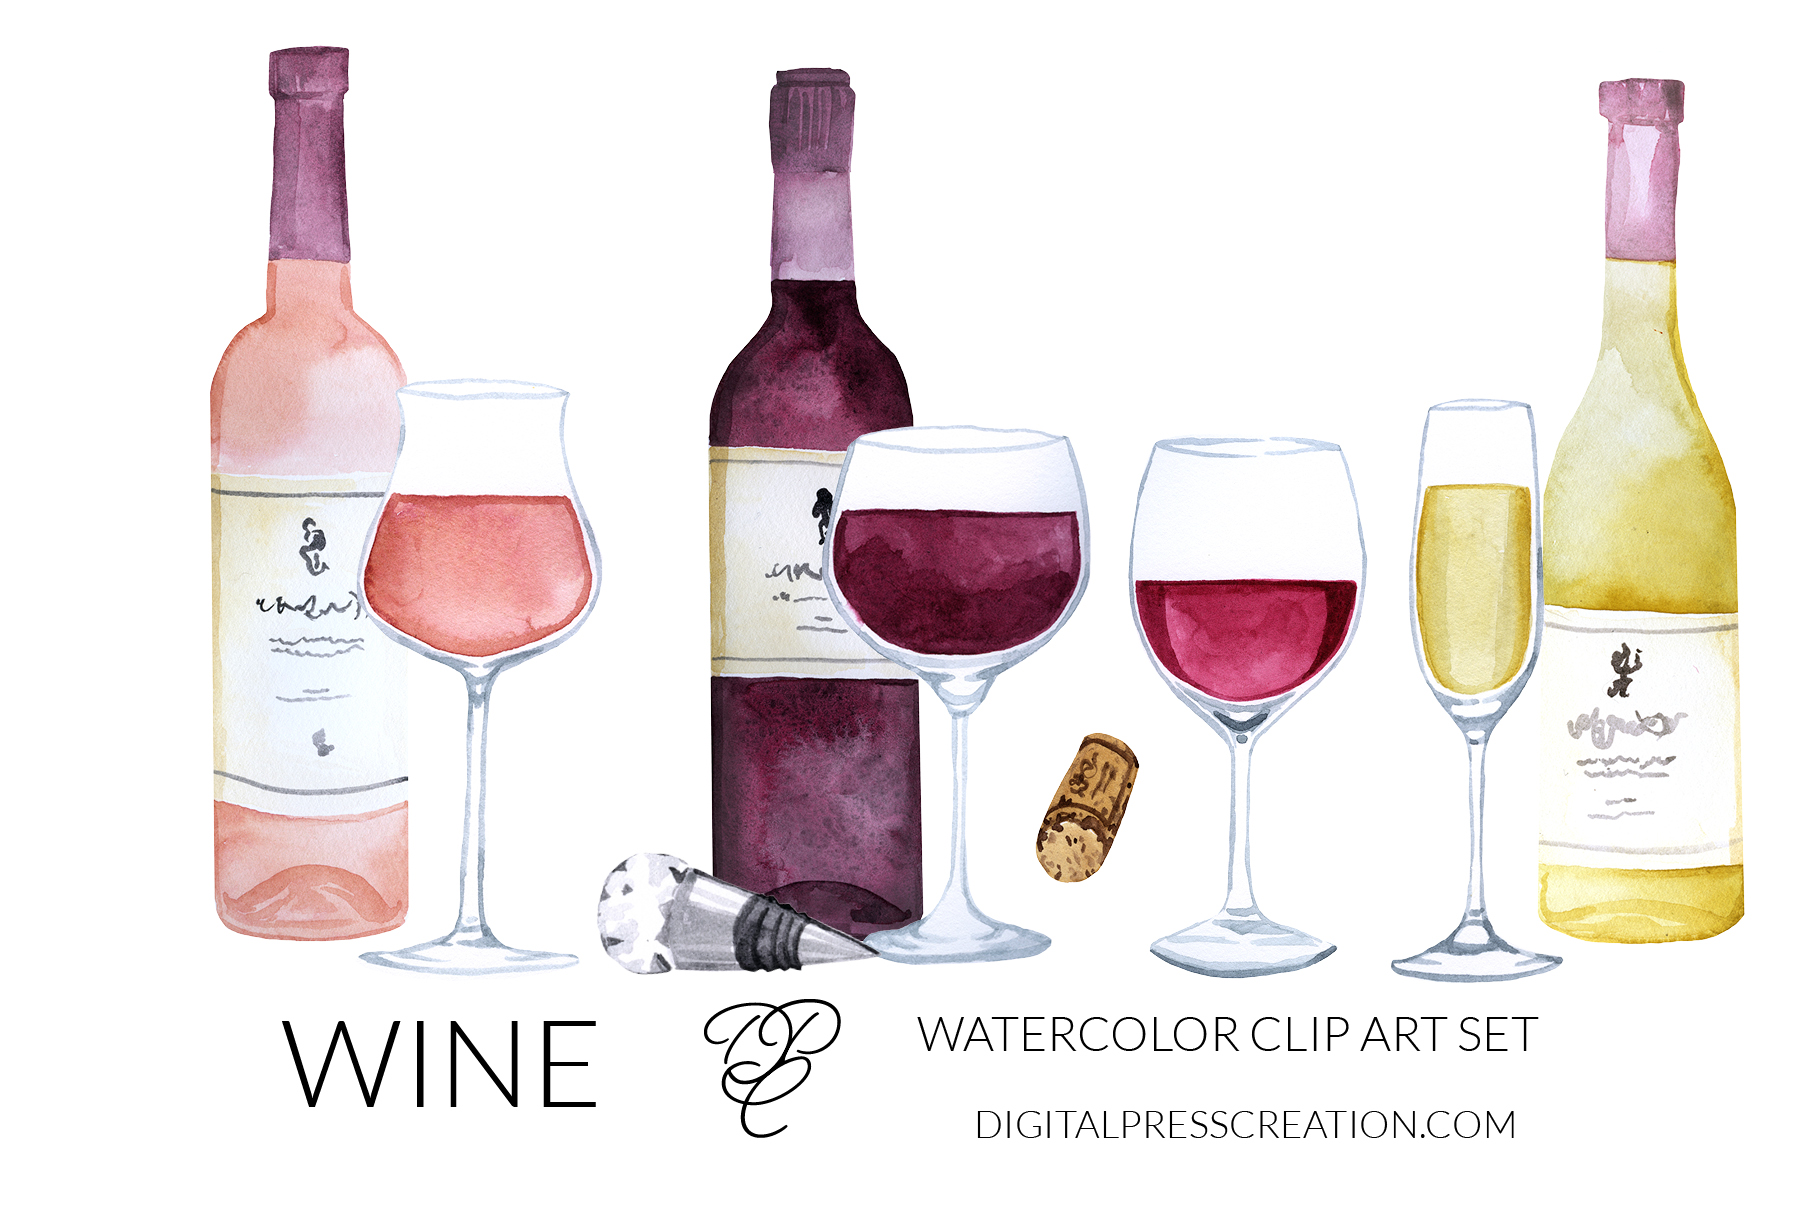 Watercolor Wine Glass Clipart Digital Press Creation